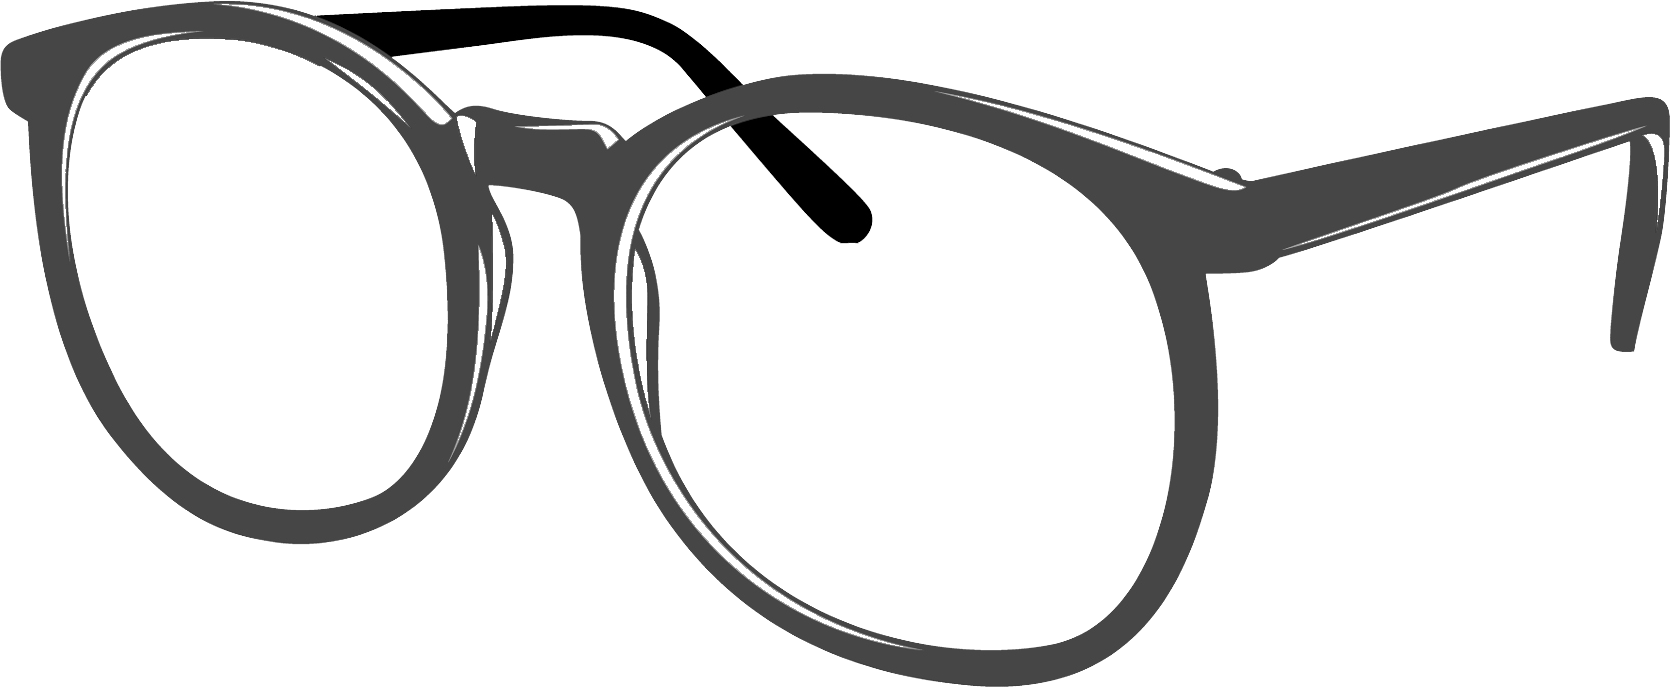 Glasses clipart free download clip art on